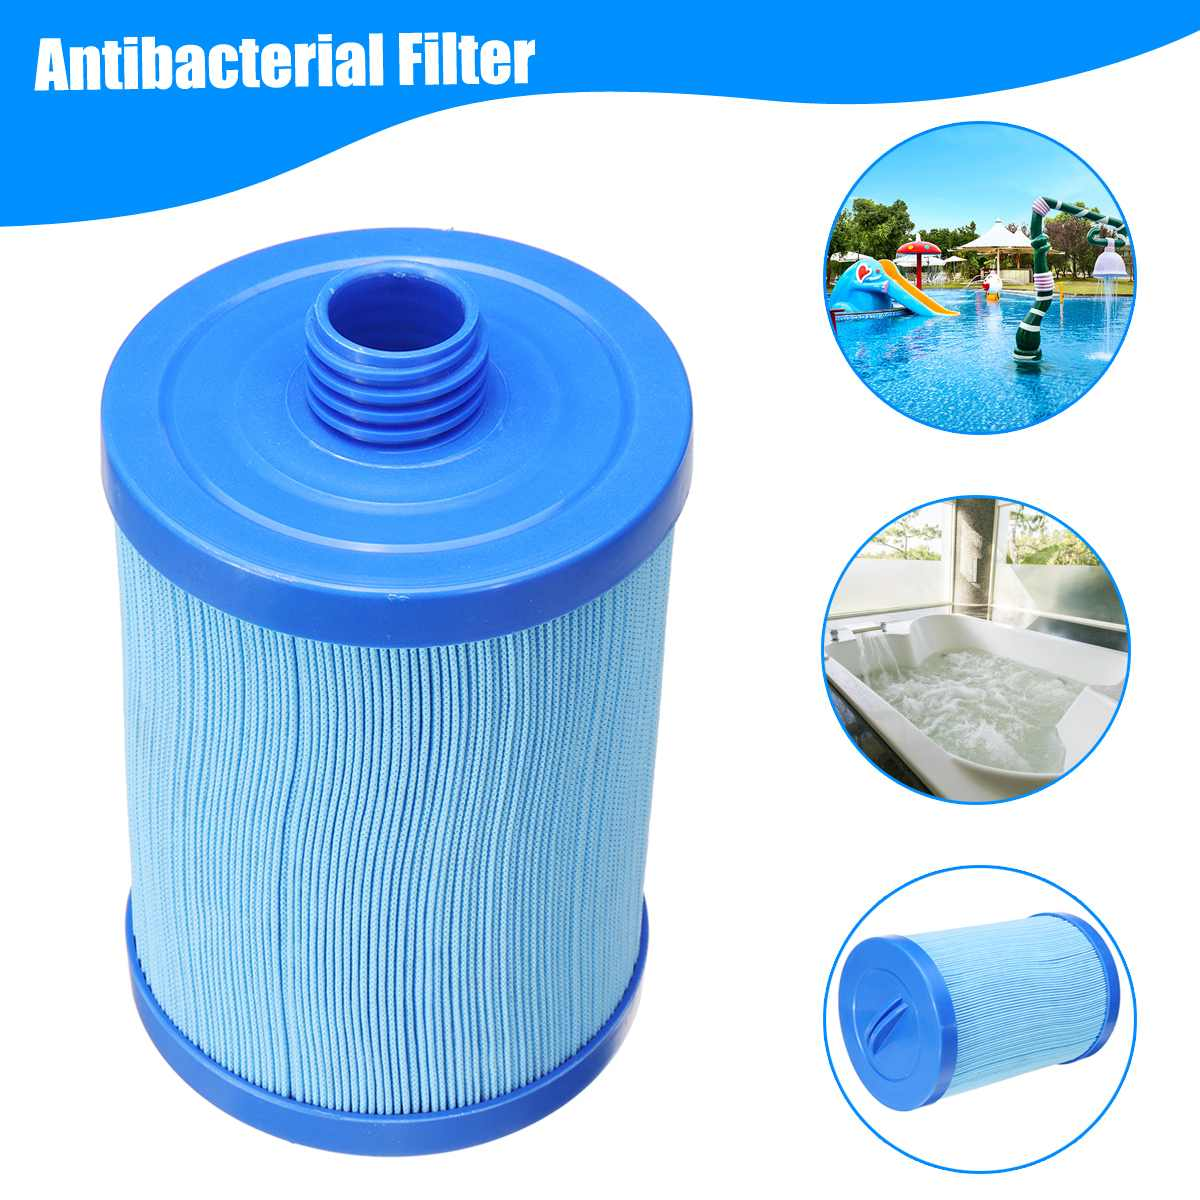 Swimming Pool Spa Filter Cartridge Replacement Antibacterial Filter Water Filter Cleaner Pool Accessories